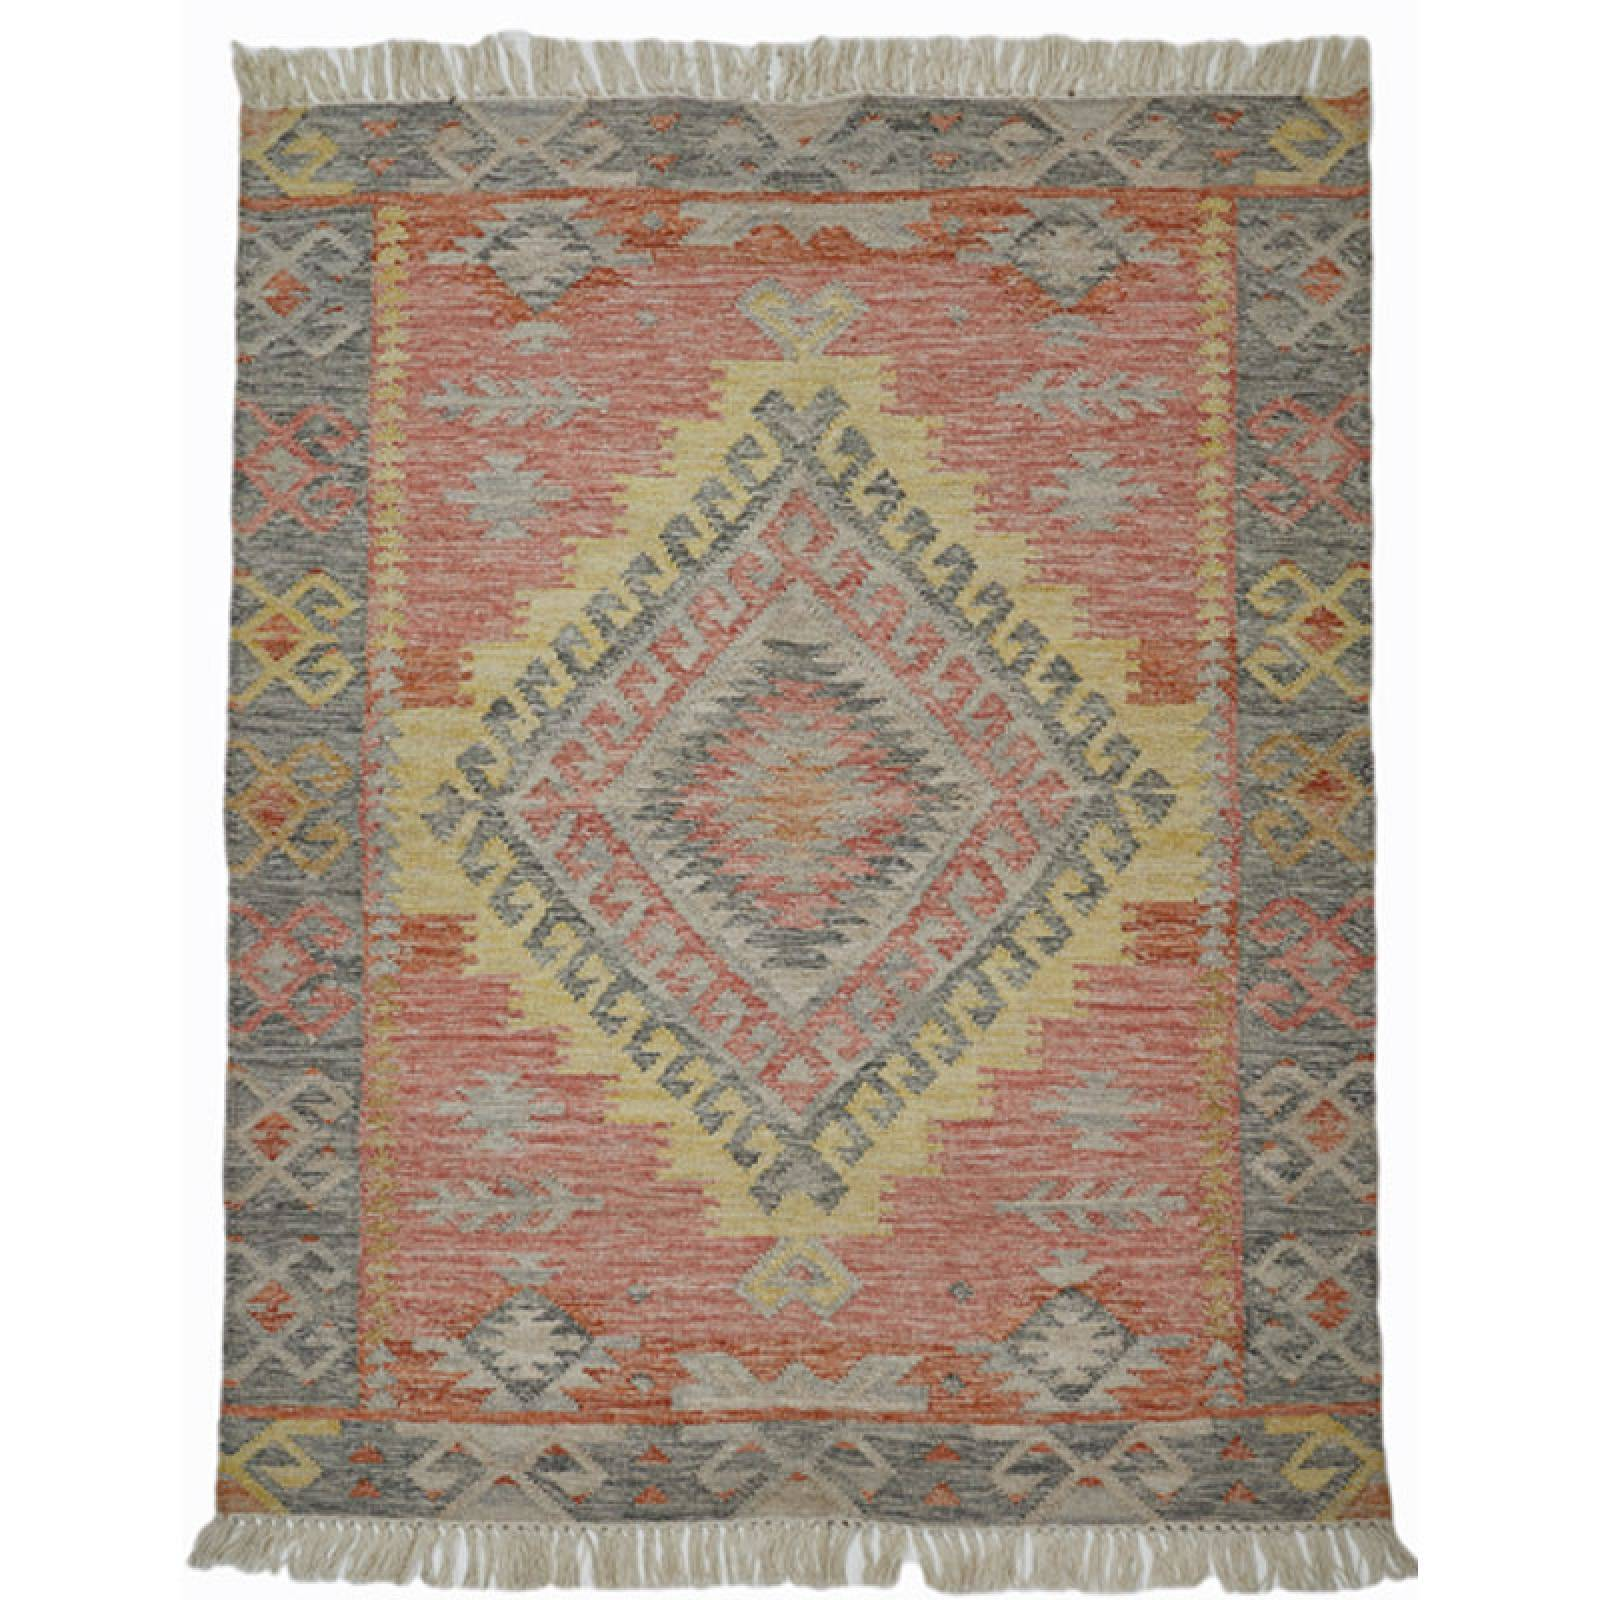 Tarifa Kilim Rug 300X250cm Recycled Bottle Rug.